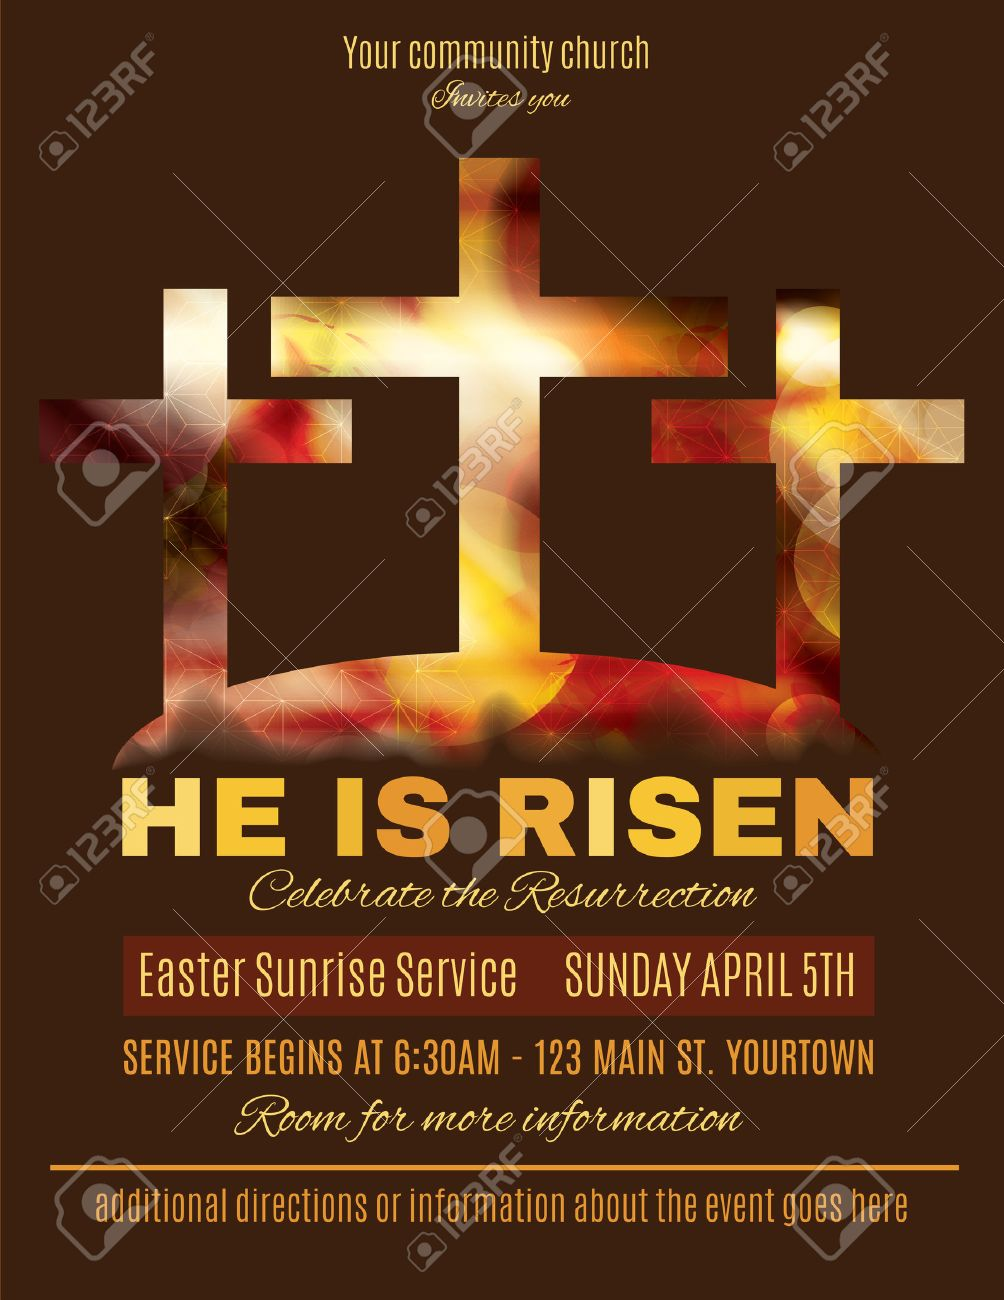 He Is Risen Easter Sunrise Service Flyer Template Royalty Free ...